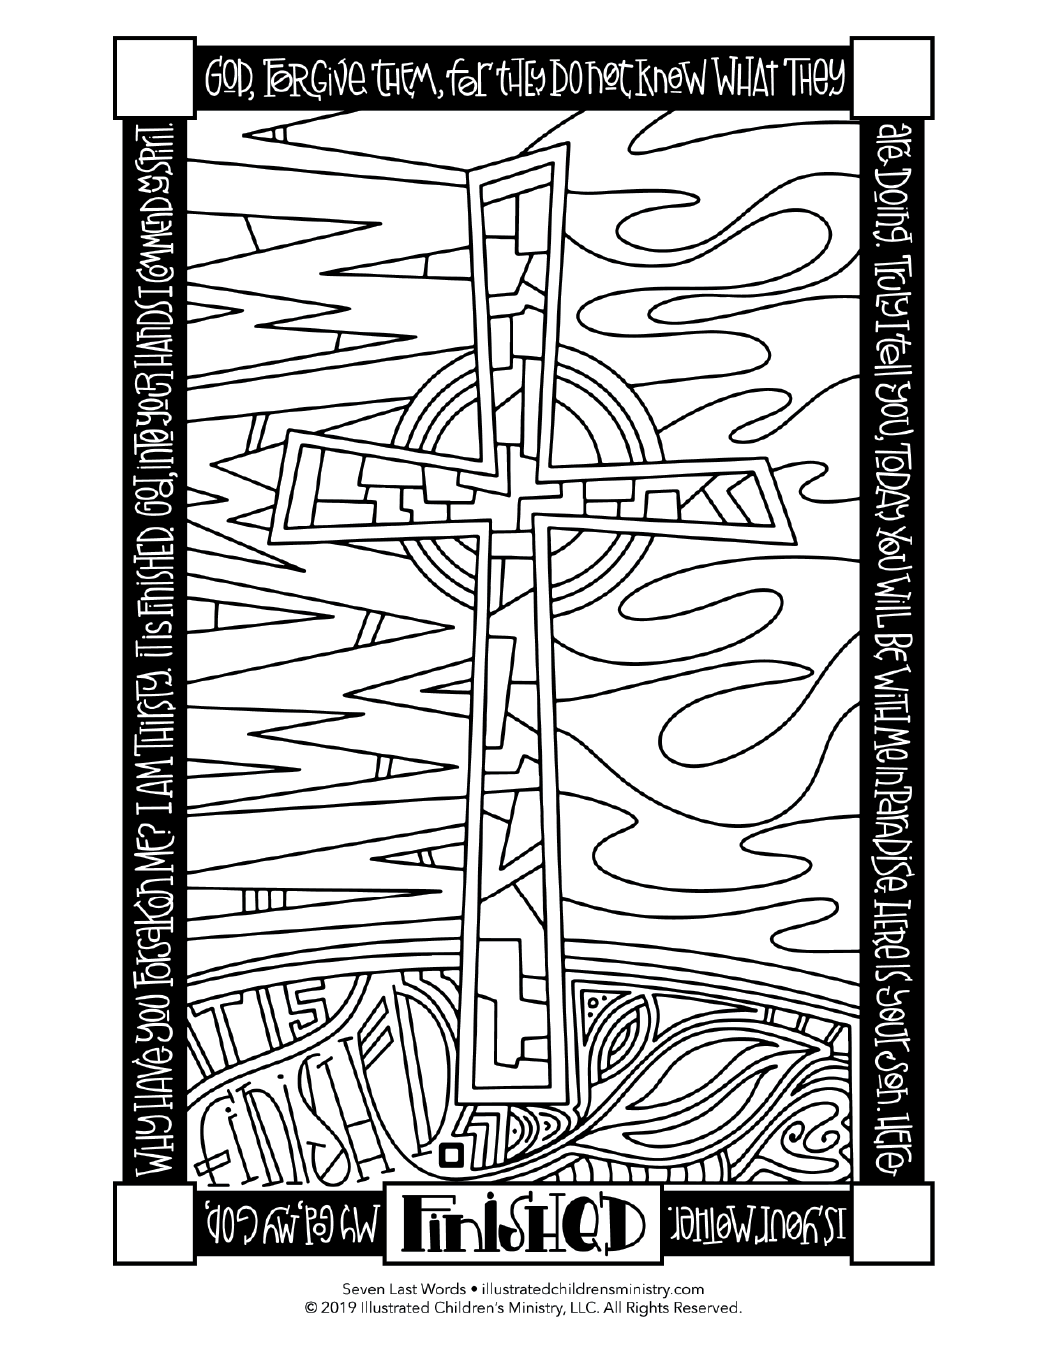 Seven Last Words coloring page - Finished